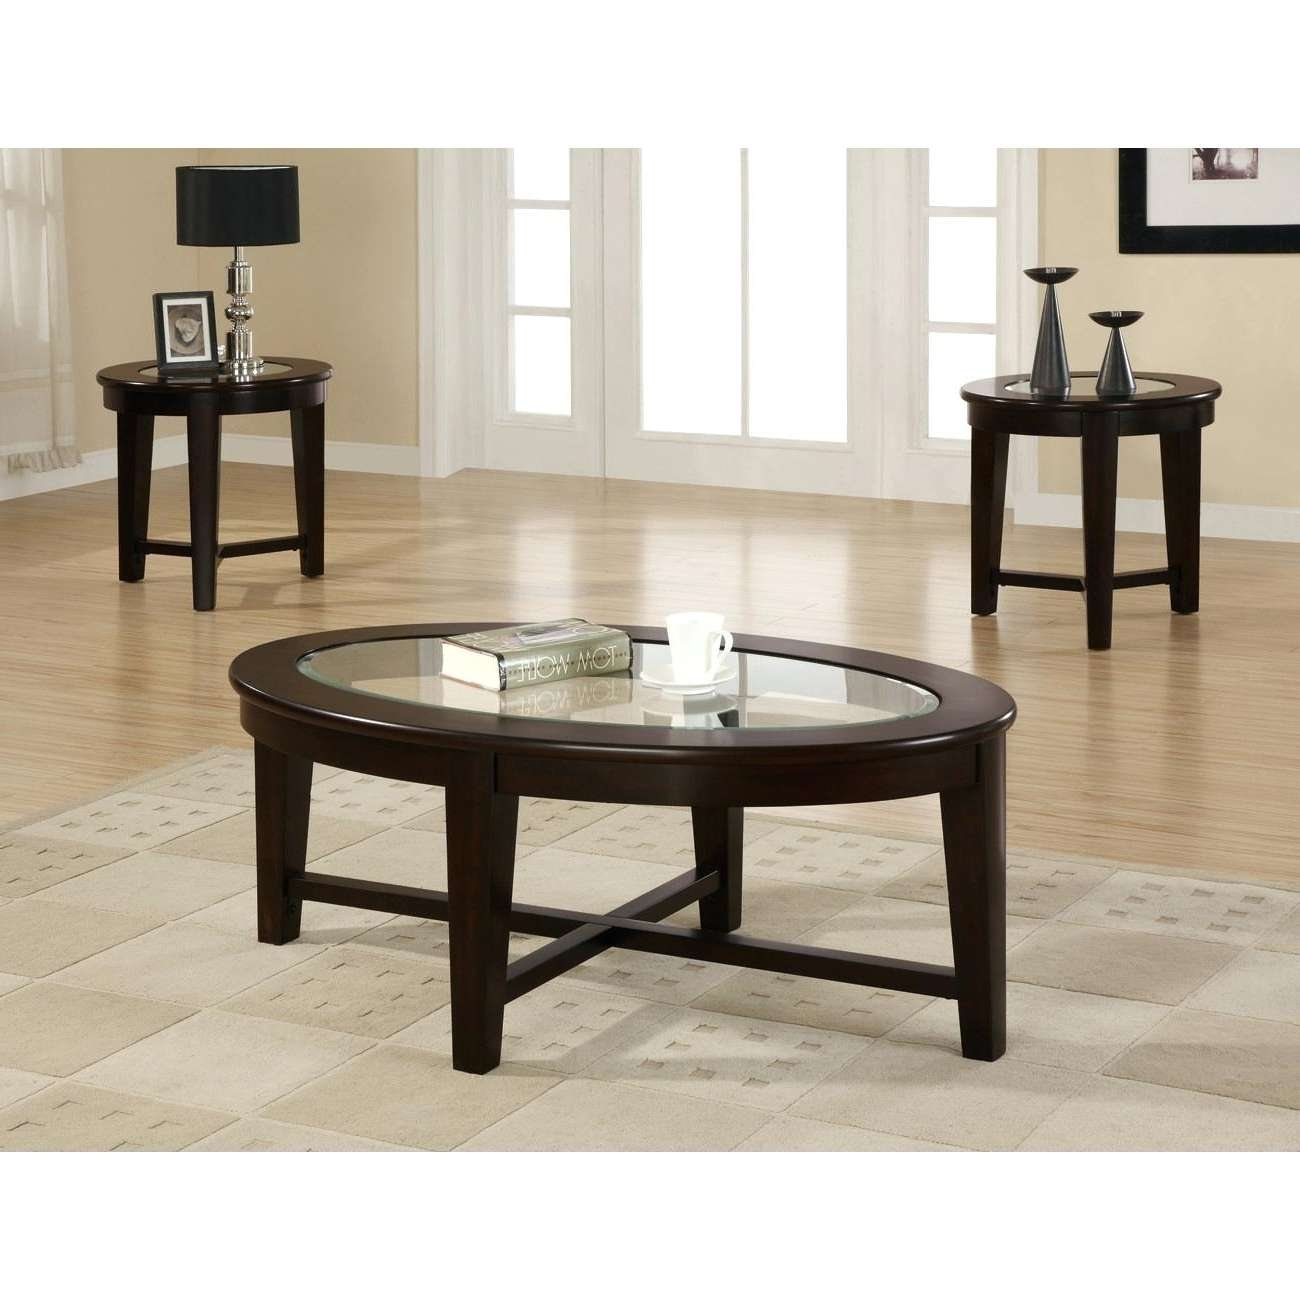 Newest Wayfair Glass Coffee Tables With Wayfair Coffee Table Sets – Akiyo (View 13 of 20)